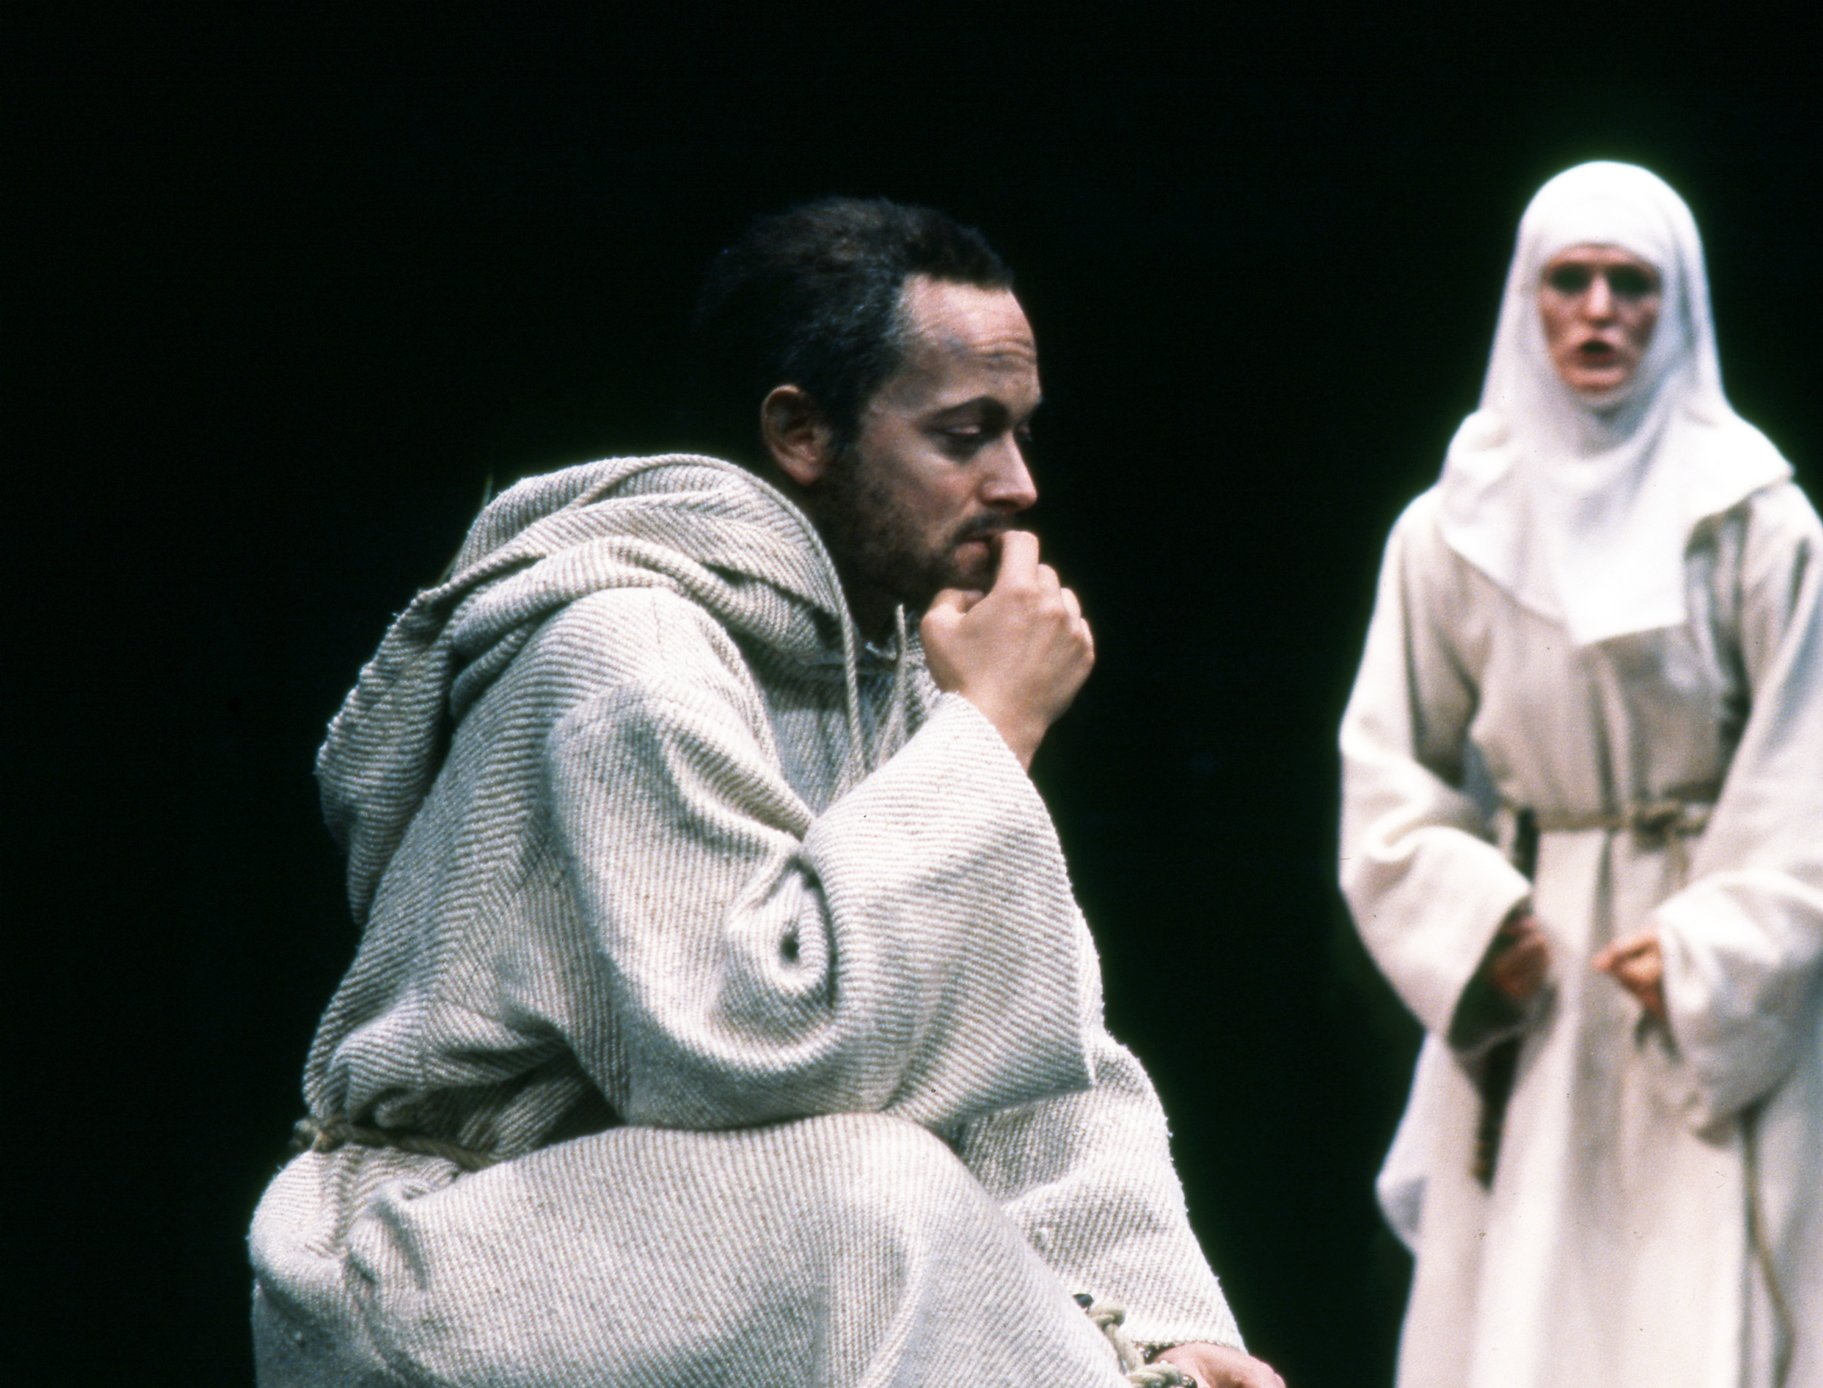 A nun and man in white robes.